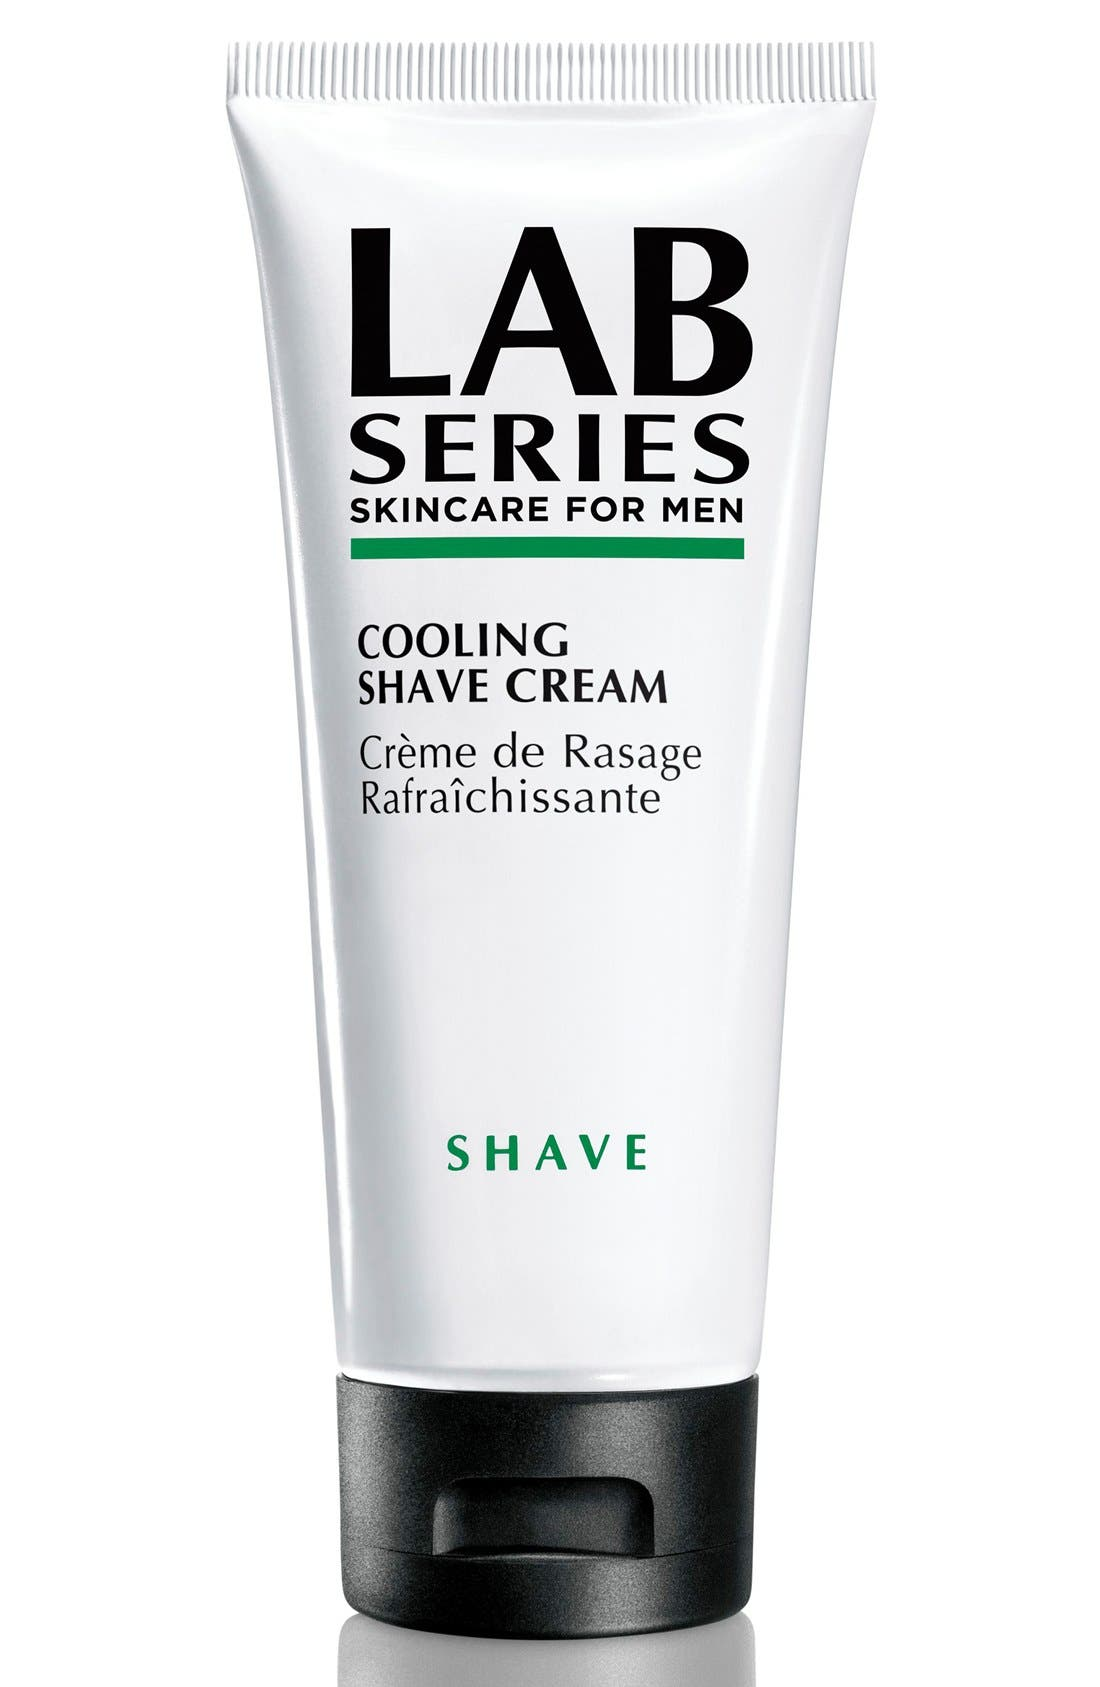 Lab Series Skincare for Men Cooling Shave Cream Tube